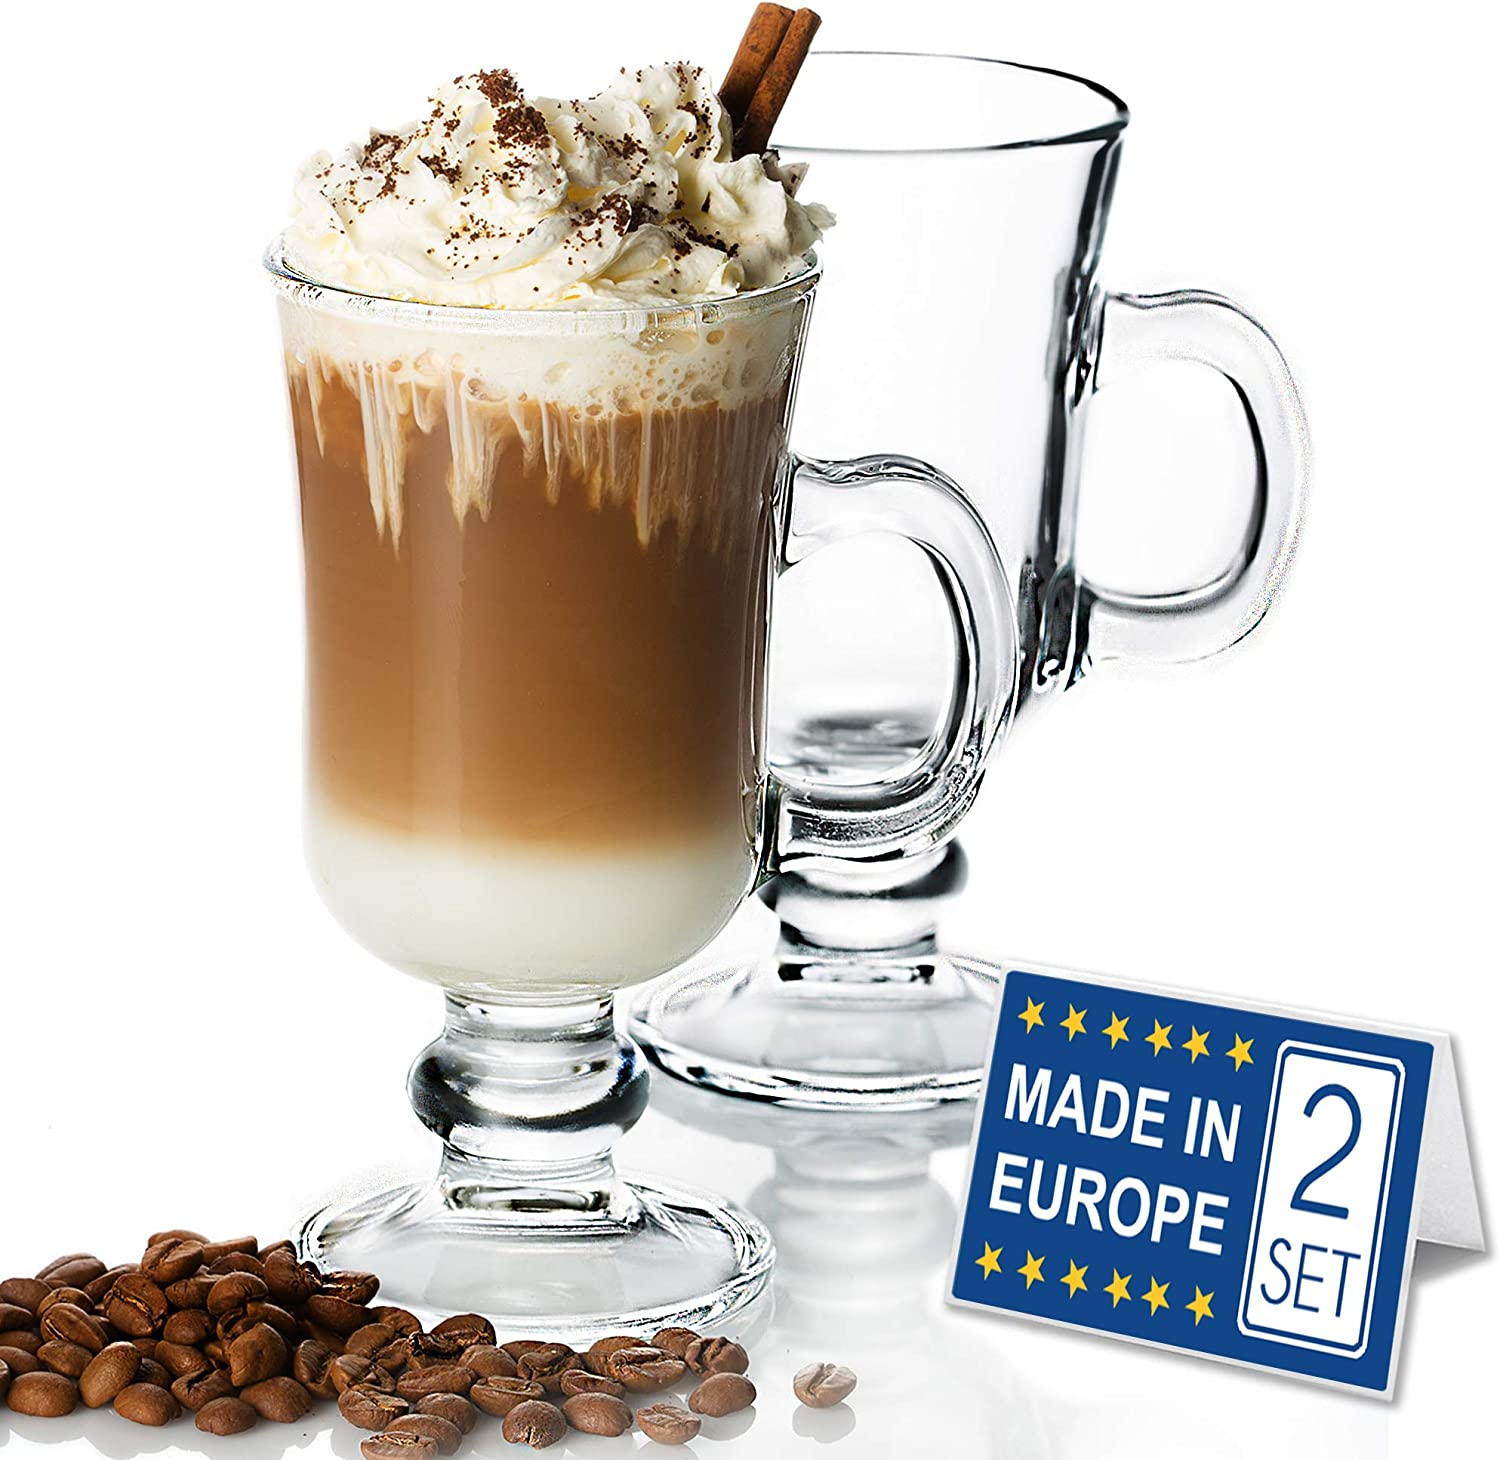 Irish Glass Coffee Mugs Sale SALE% OFF Latte Cups and Set of 2 Challenge the lowest price of Japan ☆ Hot Cappuccino